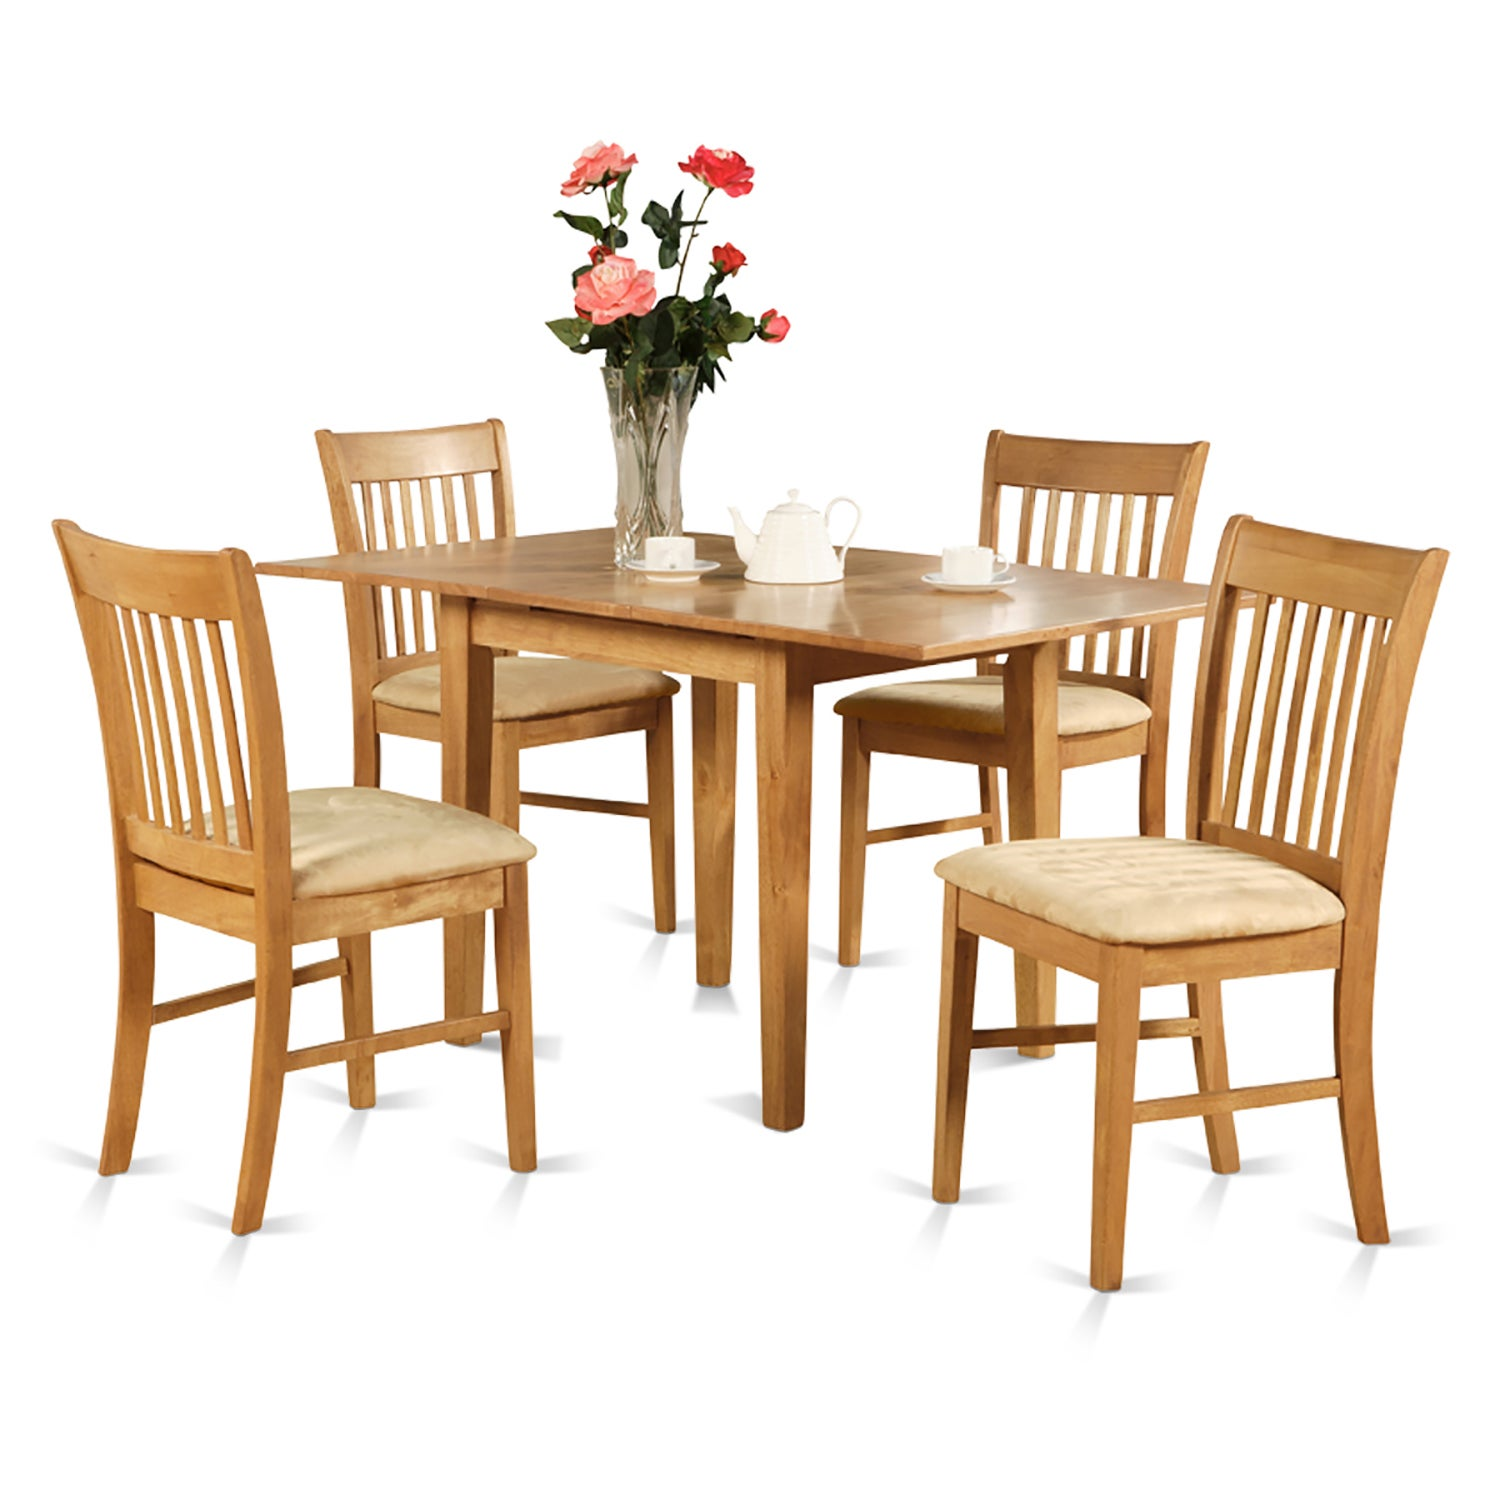 Miraculous Oak Table And 4 Dining Table Chairs 5 Piece Dining Set Creativecarmelina Interior Chair Design Creativecarmelinacom